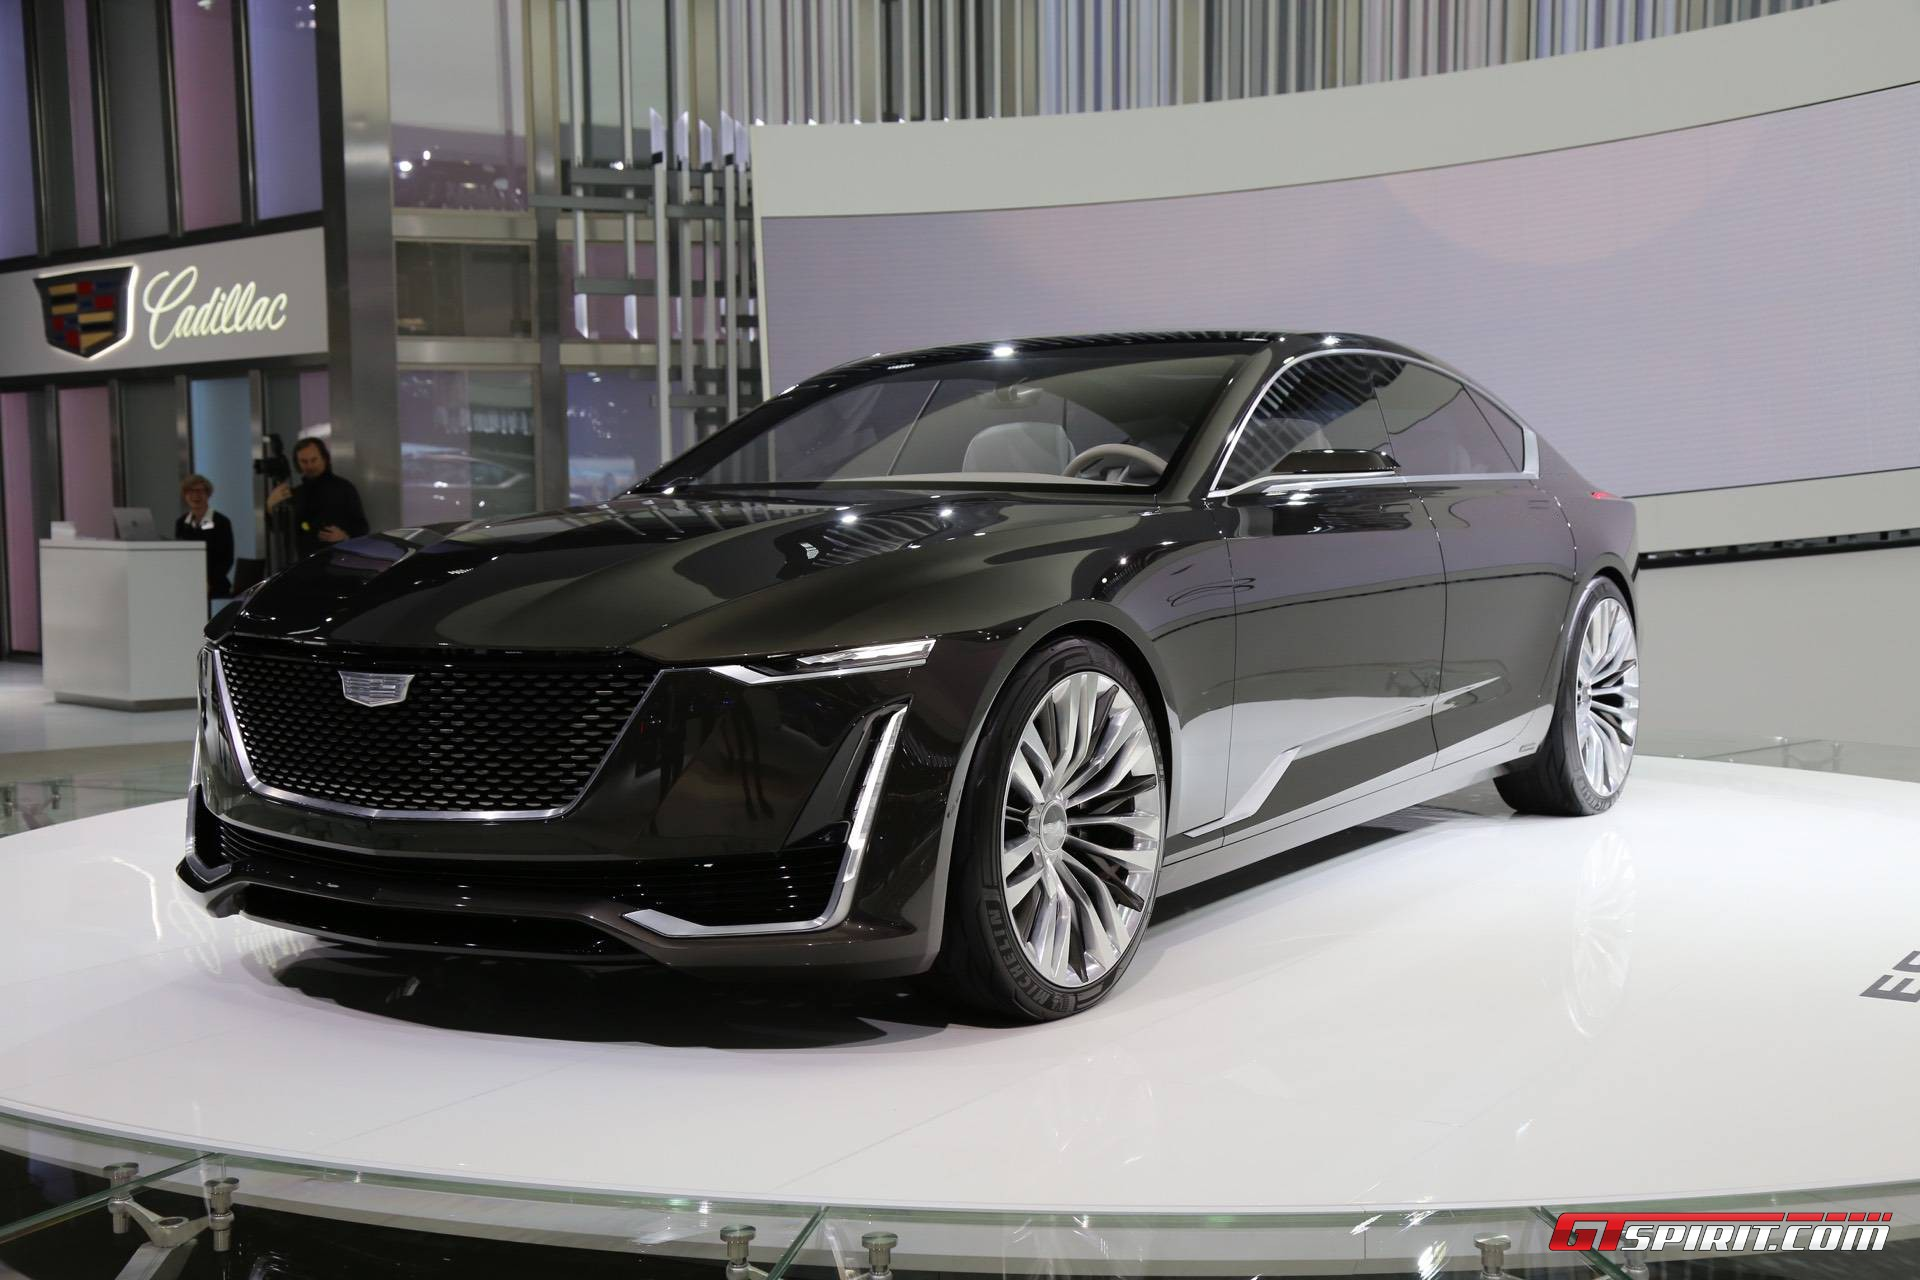 100 cadillac unveils escala concept previewing 2019 cadillac ct8 release date price. Black Bedroom Furniture Sets. Home Design Ideas